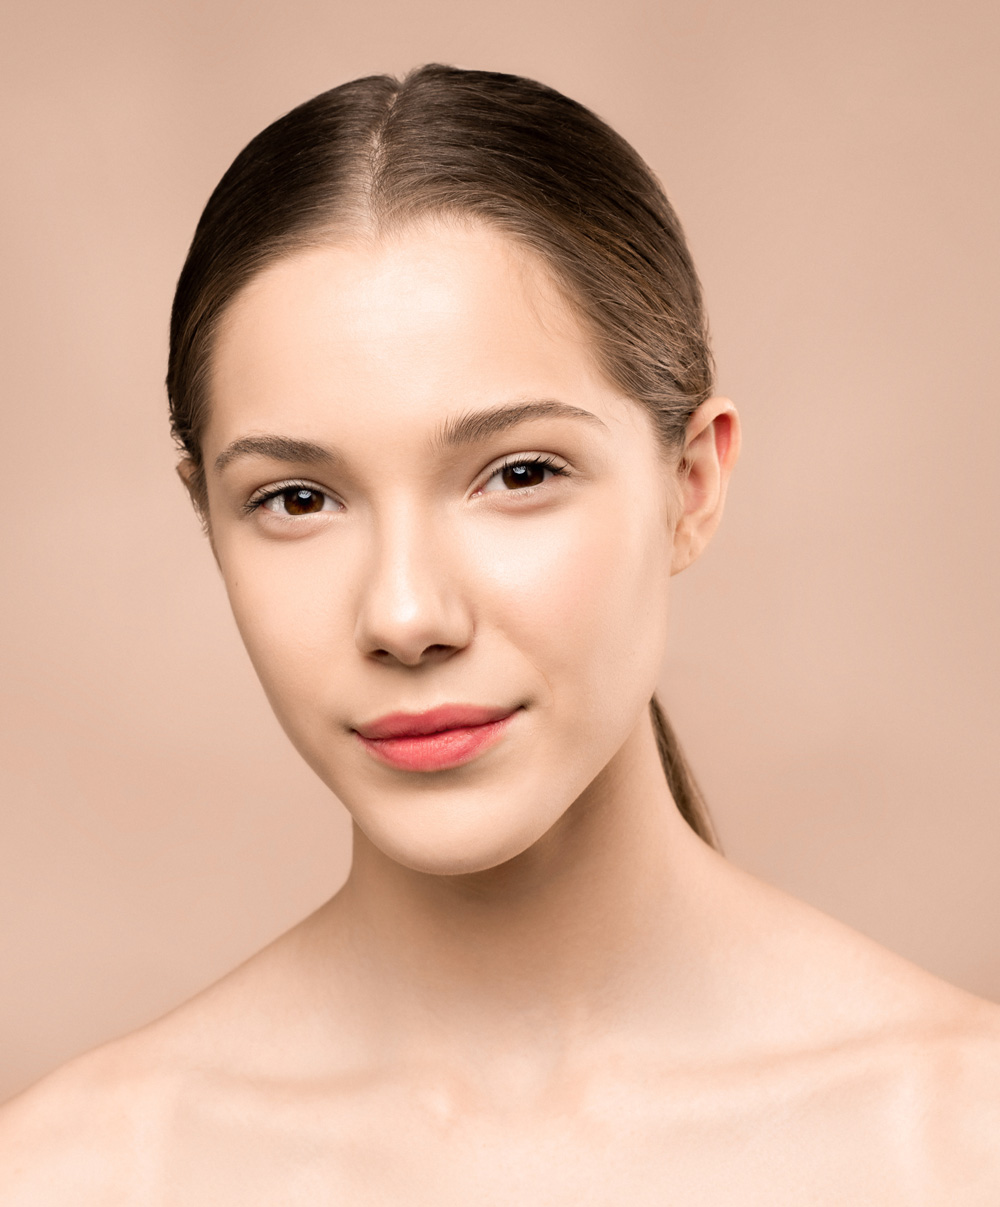 woman-with-radiant-skin-3762760-(1)